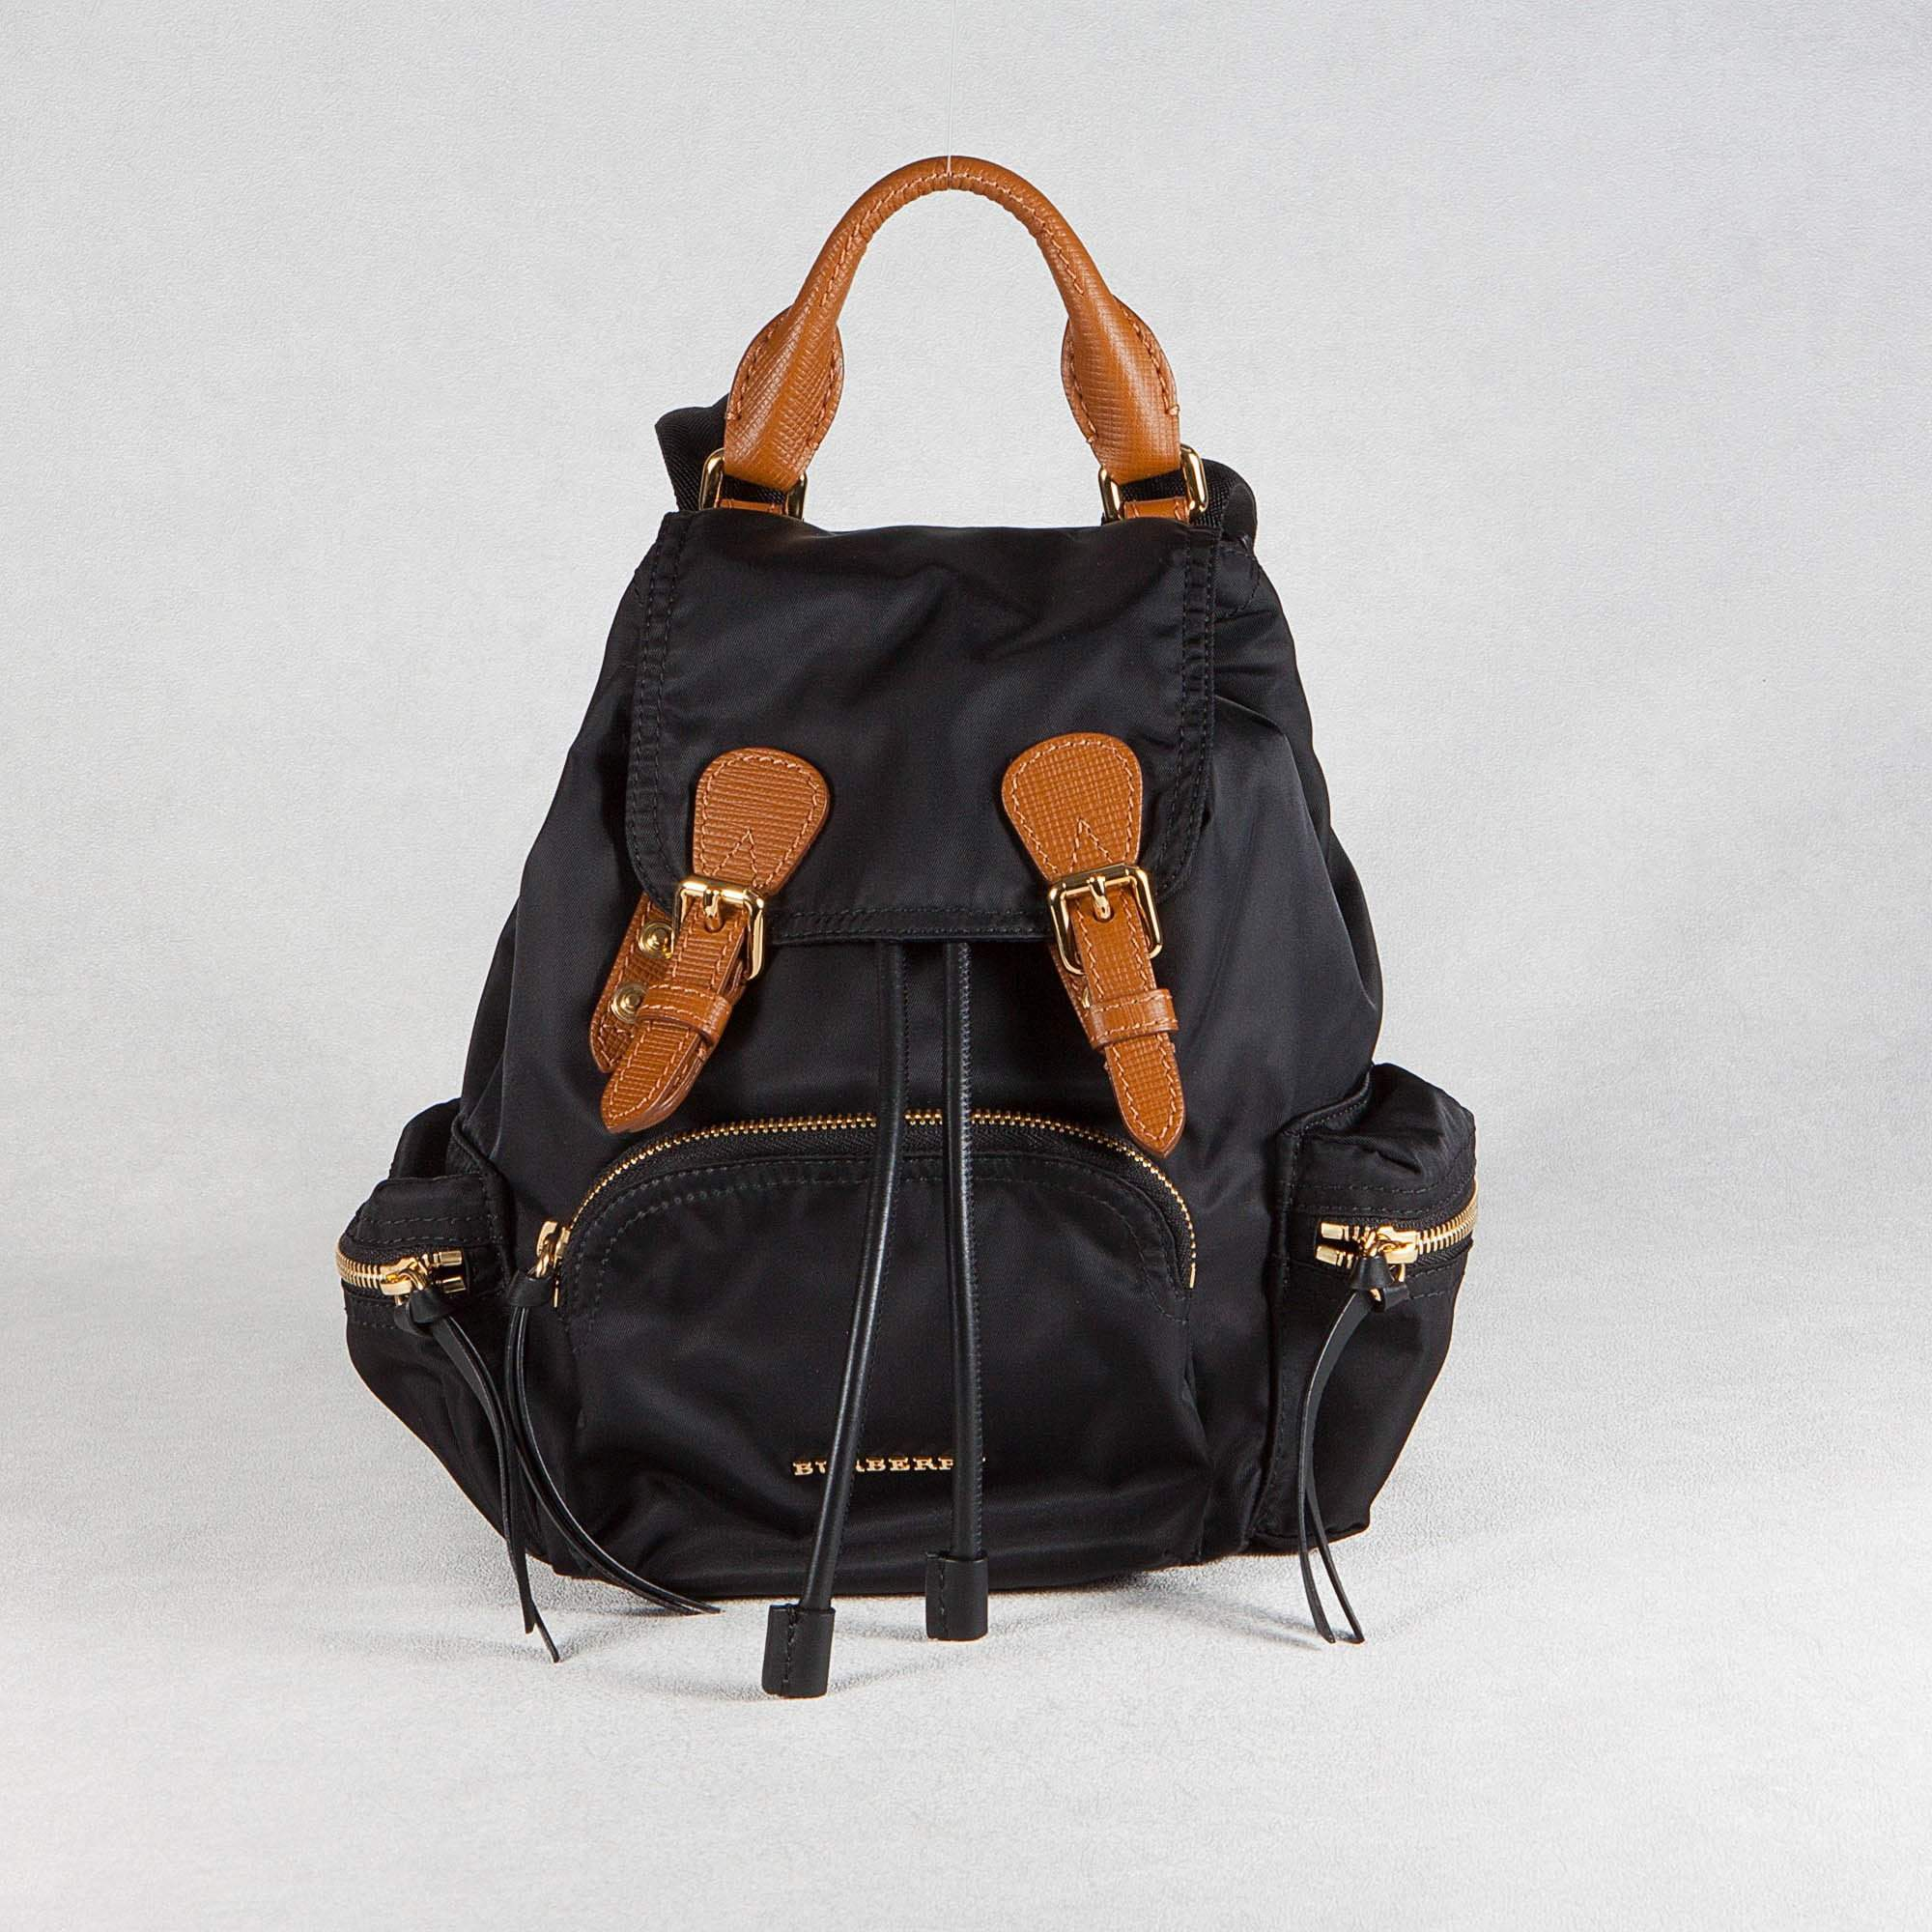 Burberry Nylon and leather small backpack